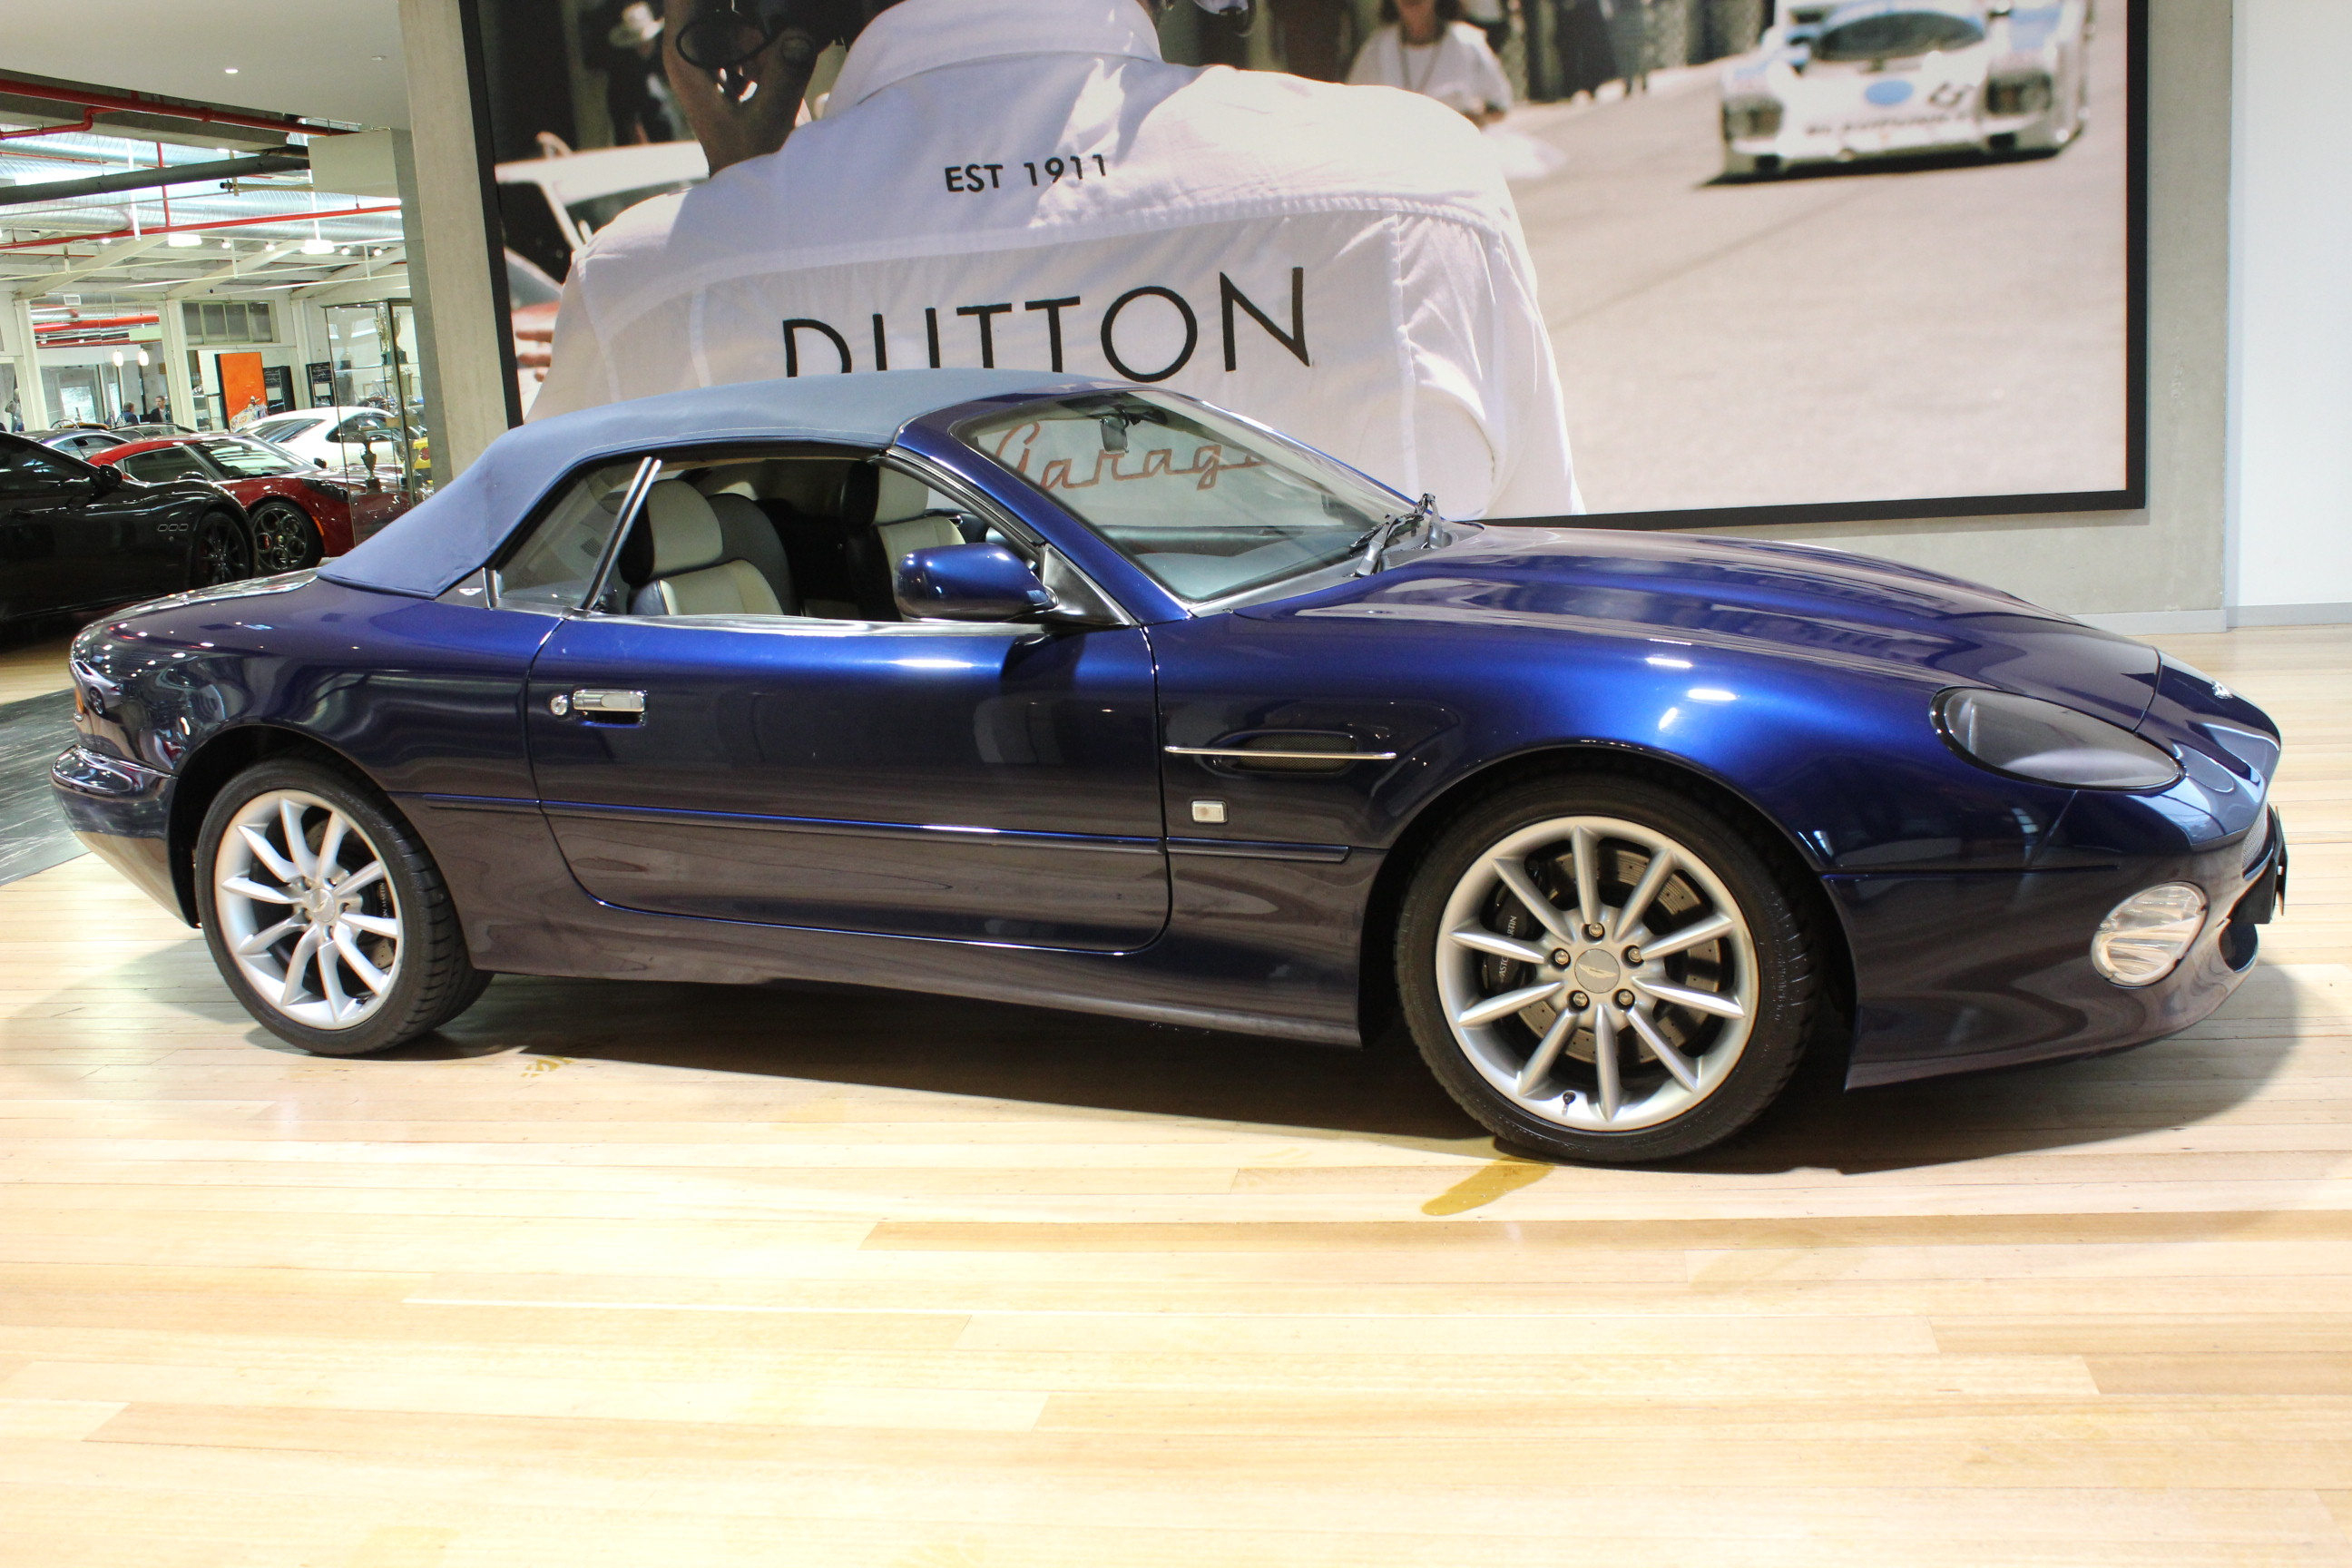 2001 ASTON MARTIN DB7 VANTAGE VOLANTE - for sale in Australia